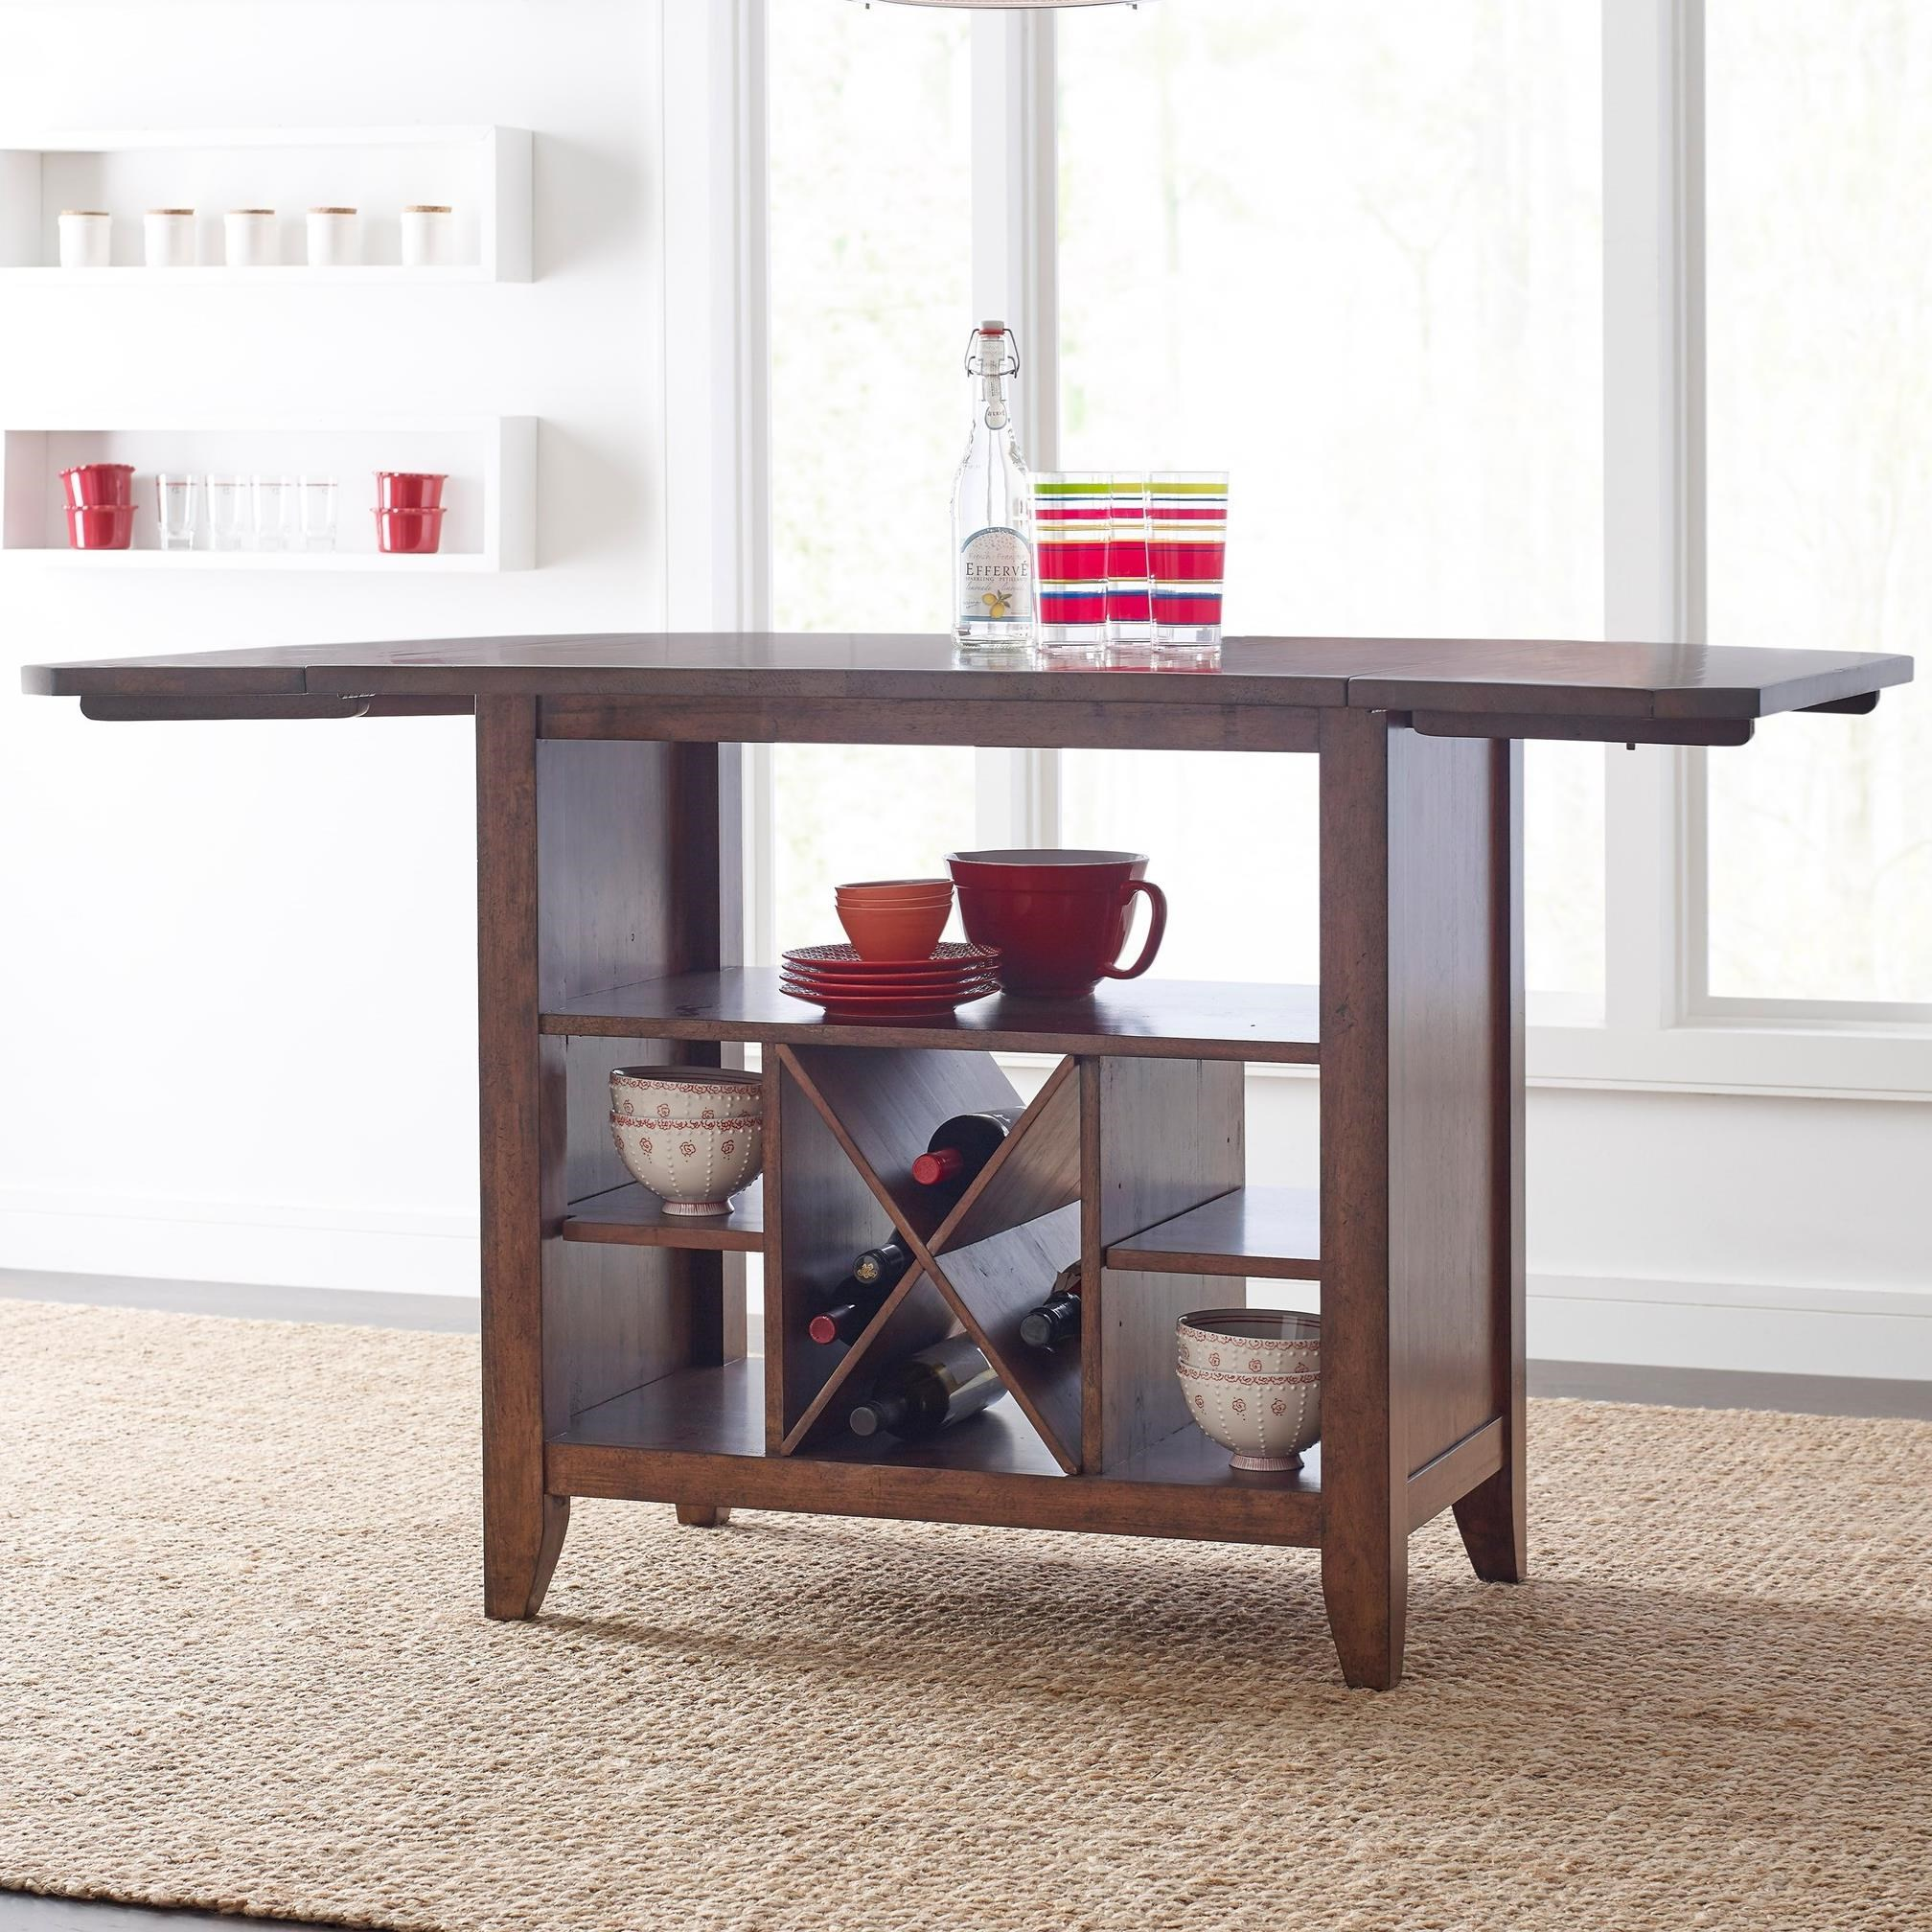 The Nook Kitchen Island by Kincaid Furniture at Johnny Janosik